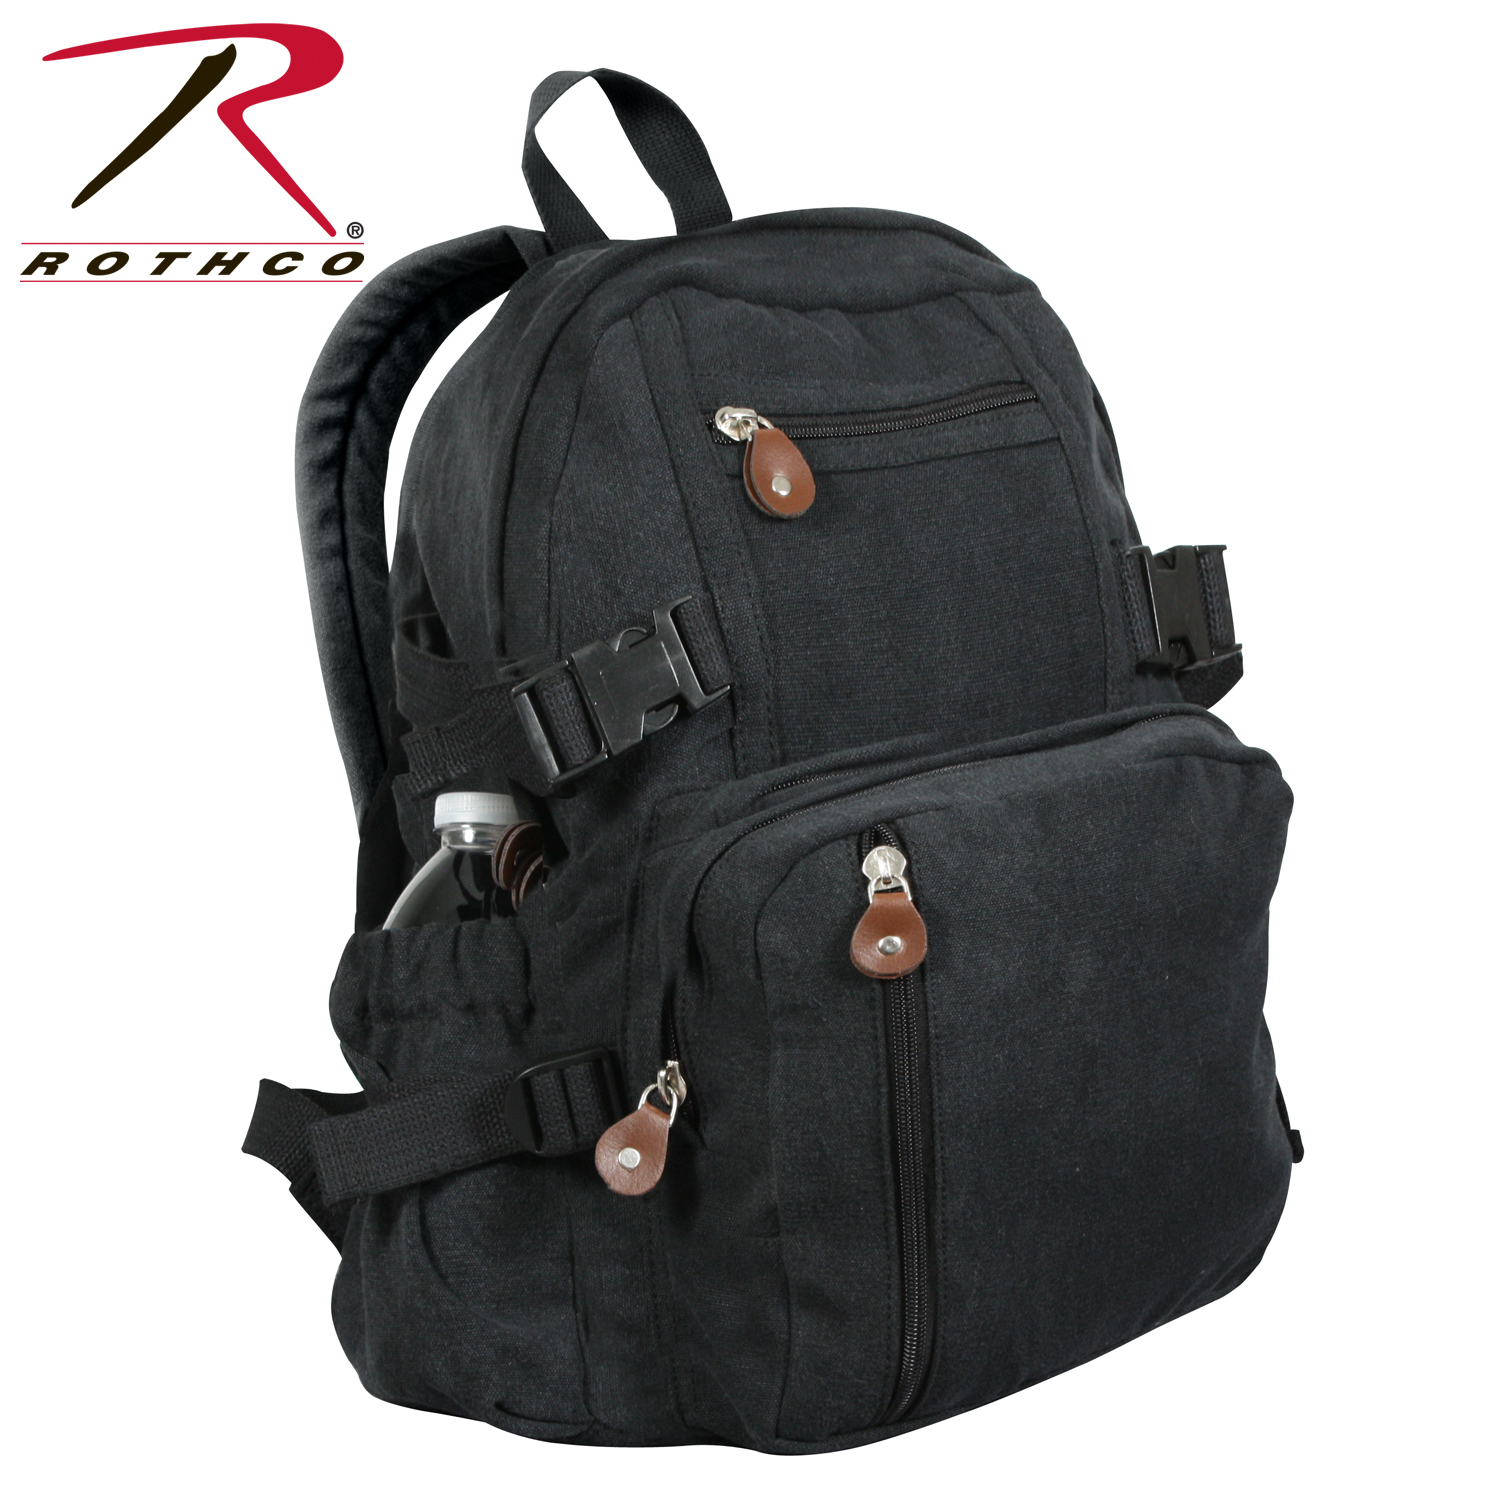 129856975 Rothco Vintage Canvas Compact Backpack